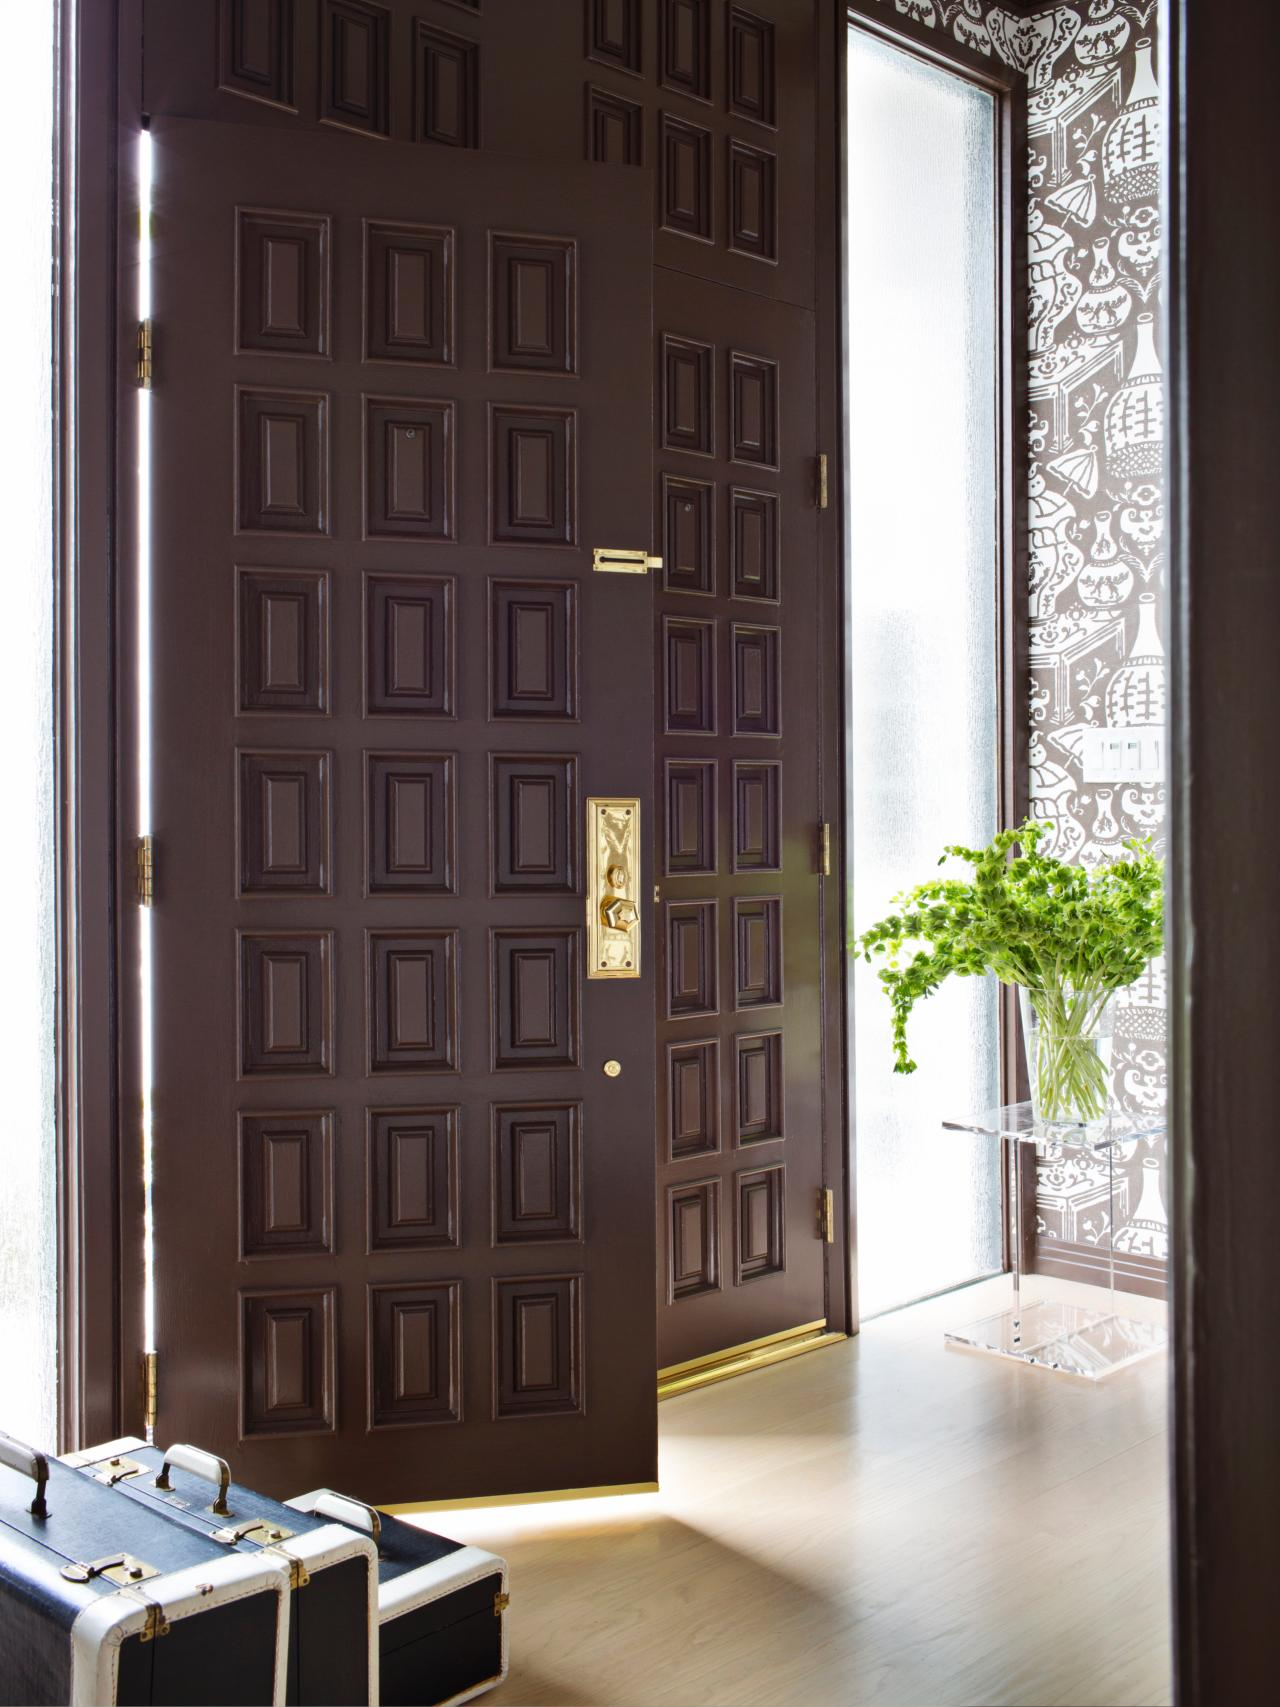 Charmant Chocolate Brown Doors